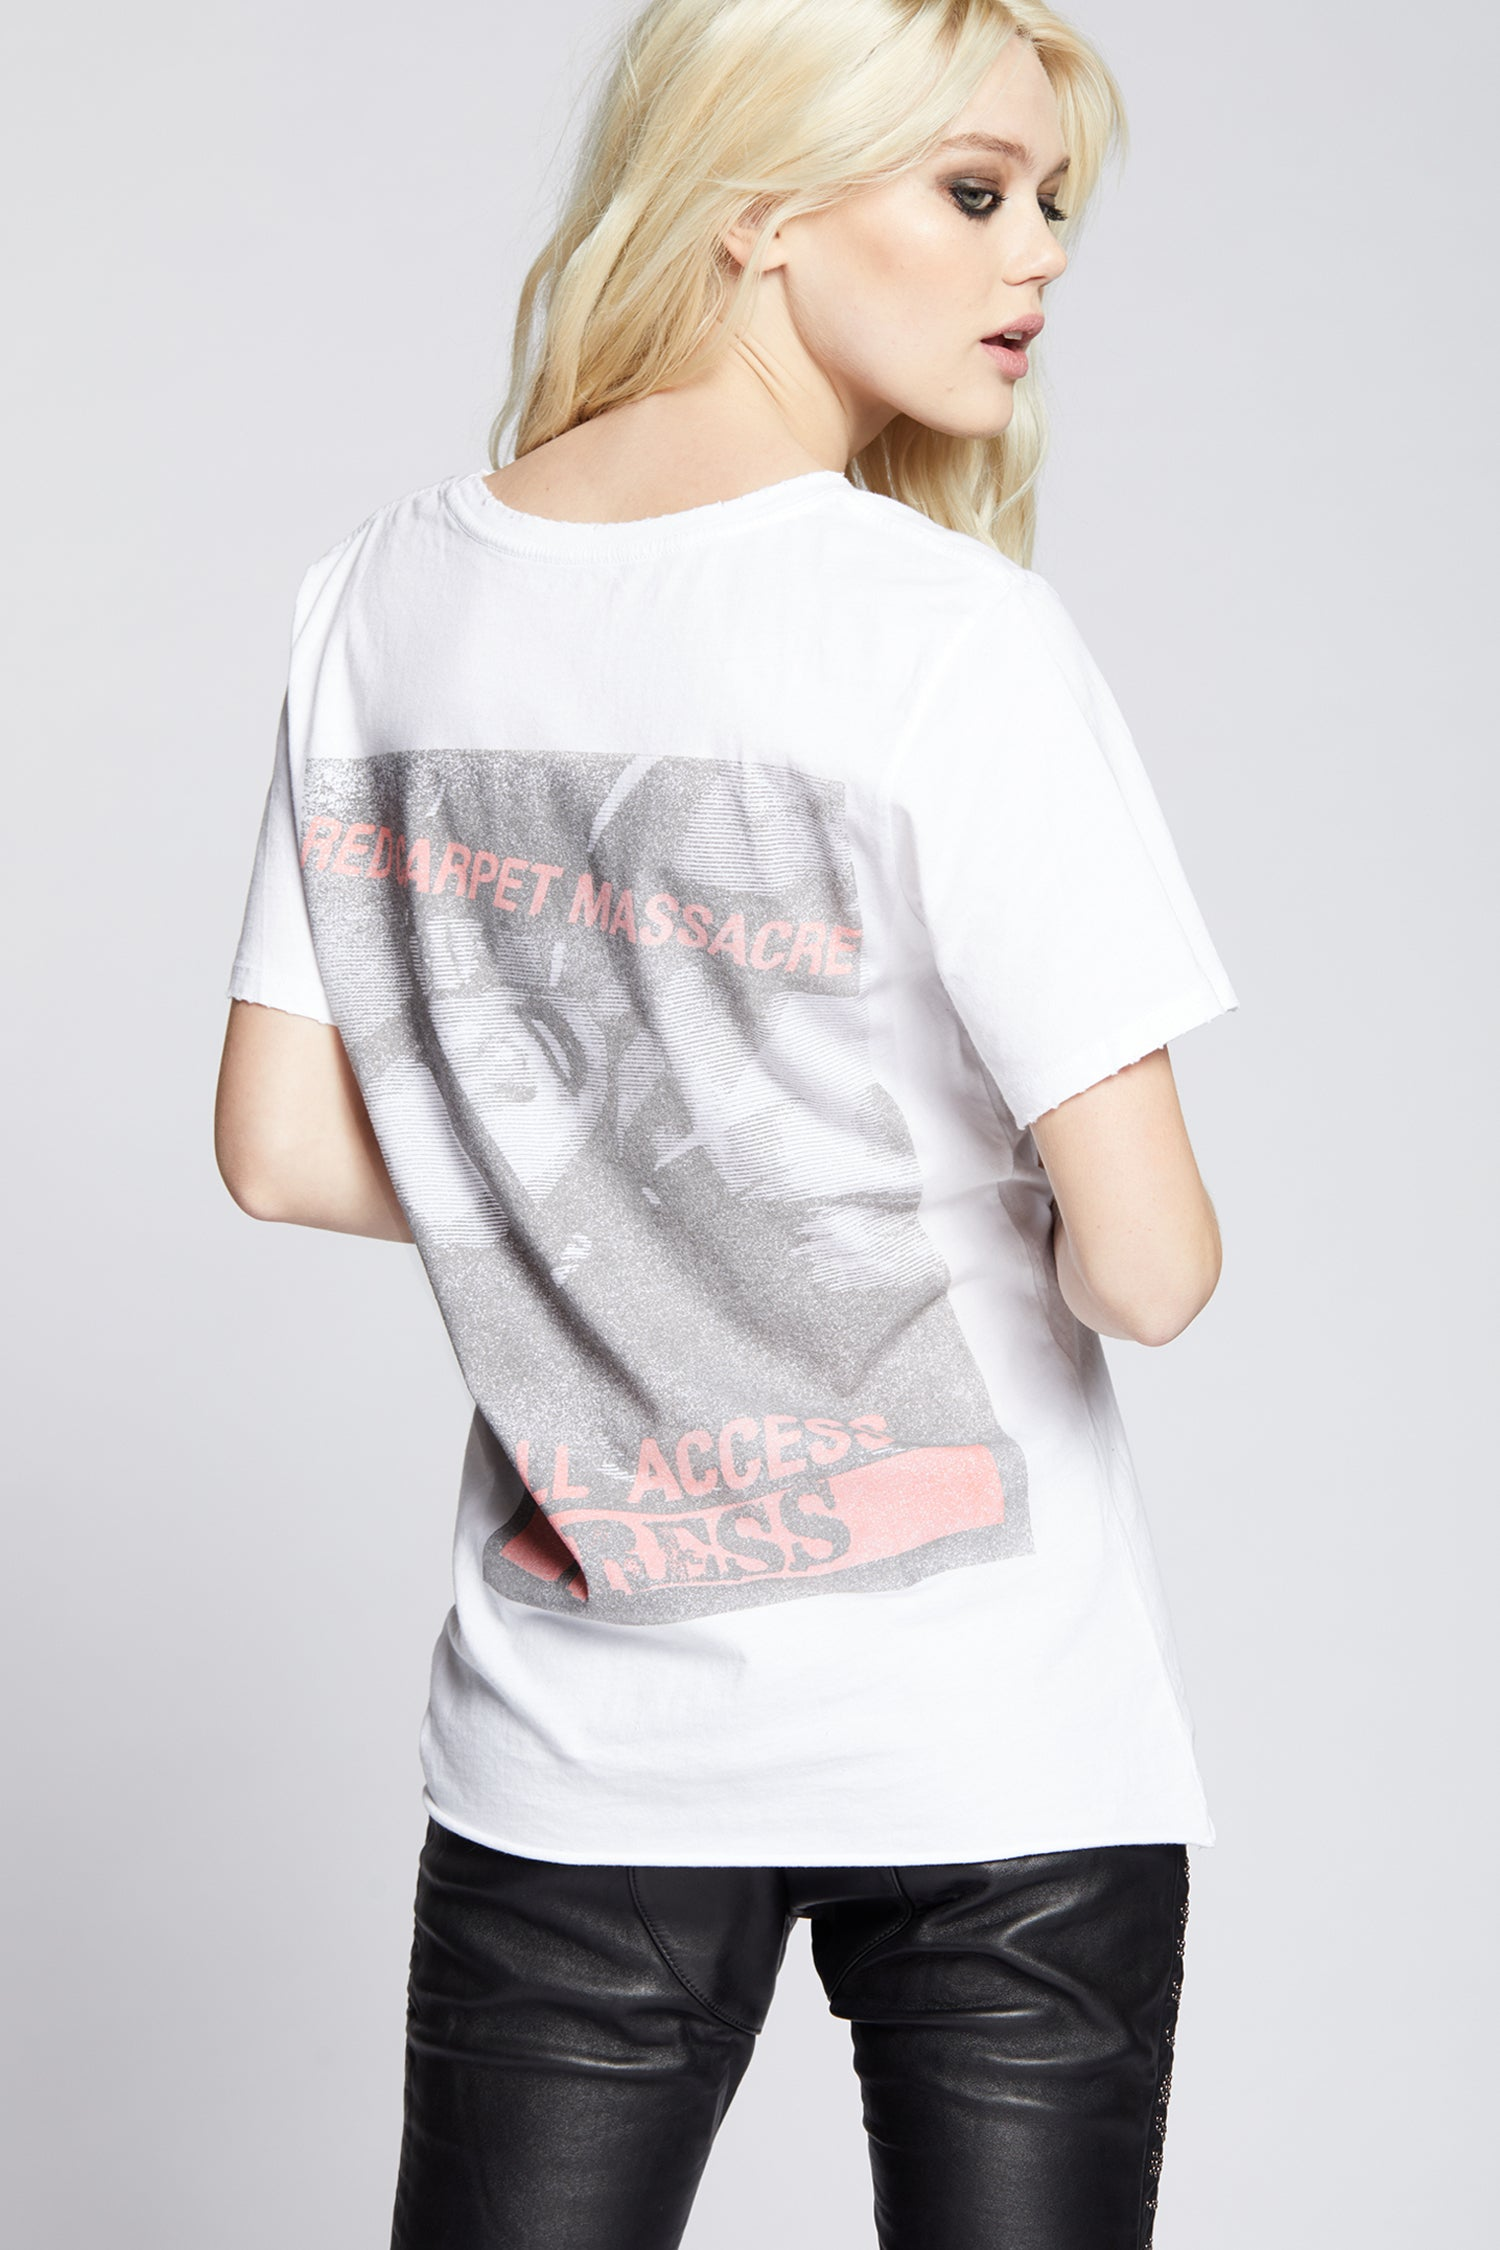 Duran Duran Red Carpet Tee